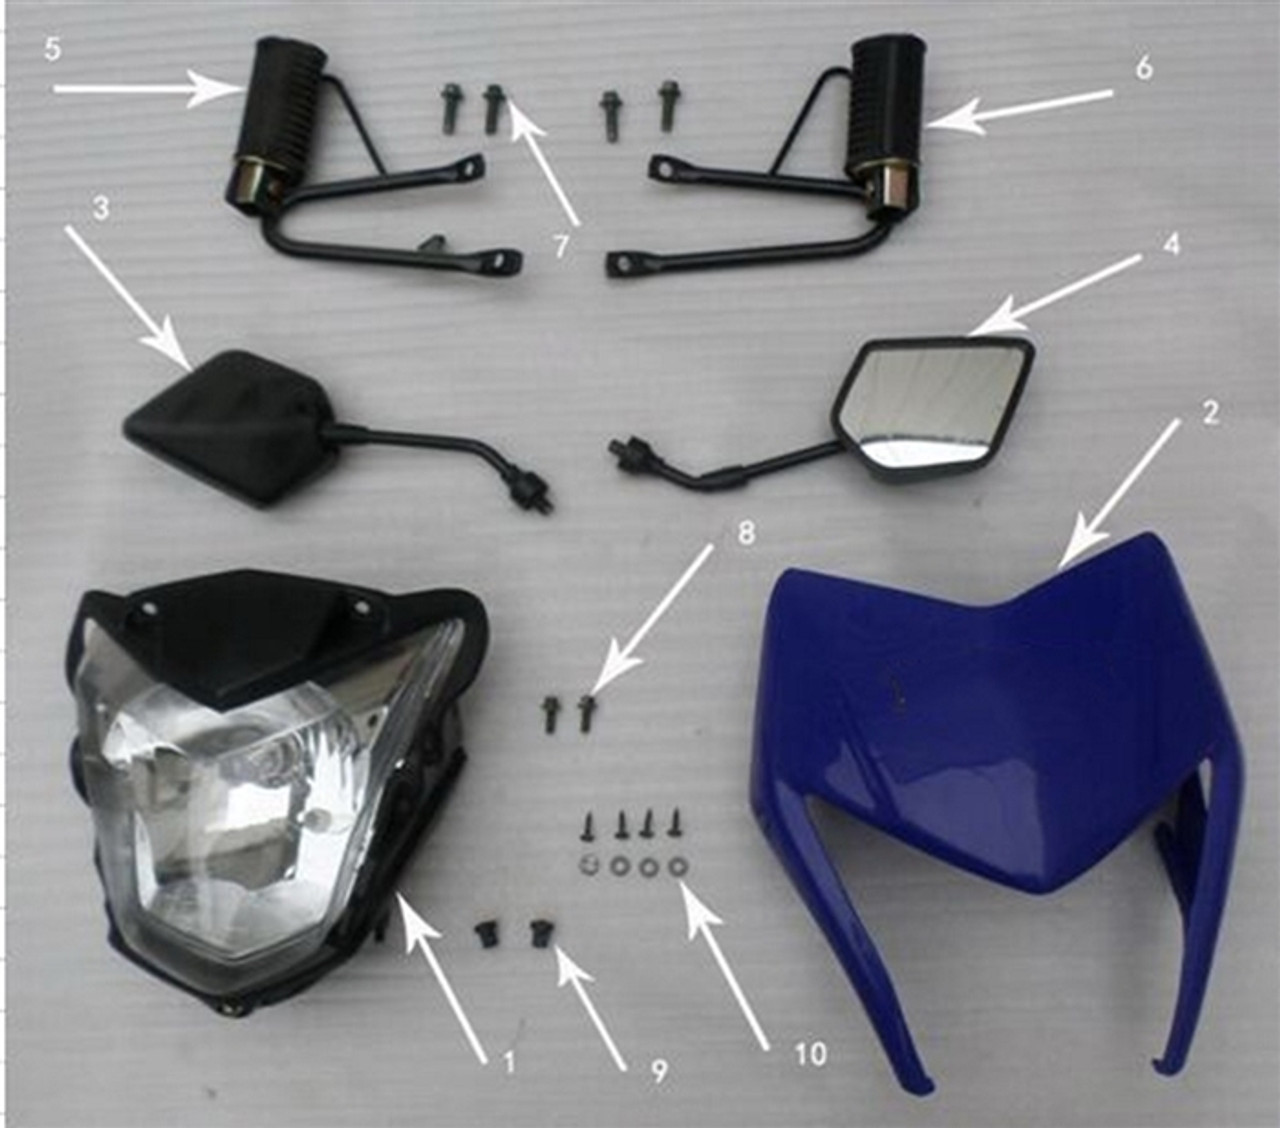 Hawk 250 Screws and Washers (Headlight-Cover)